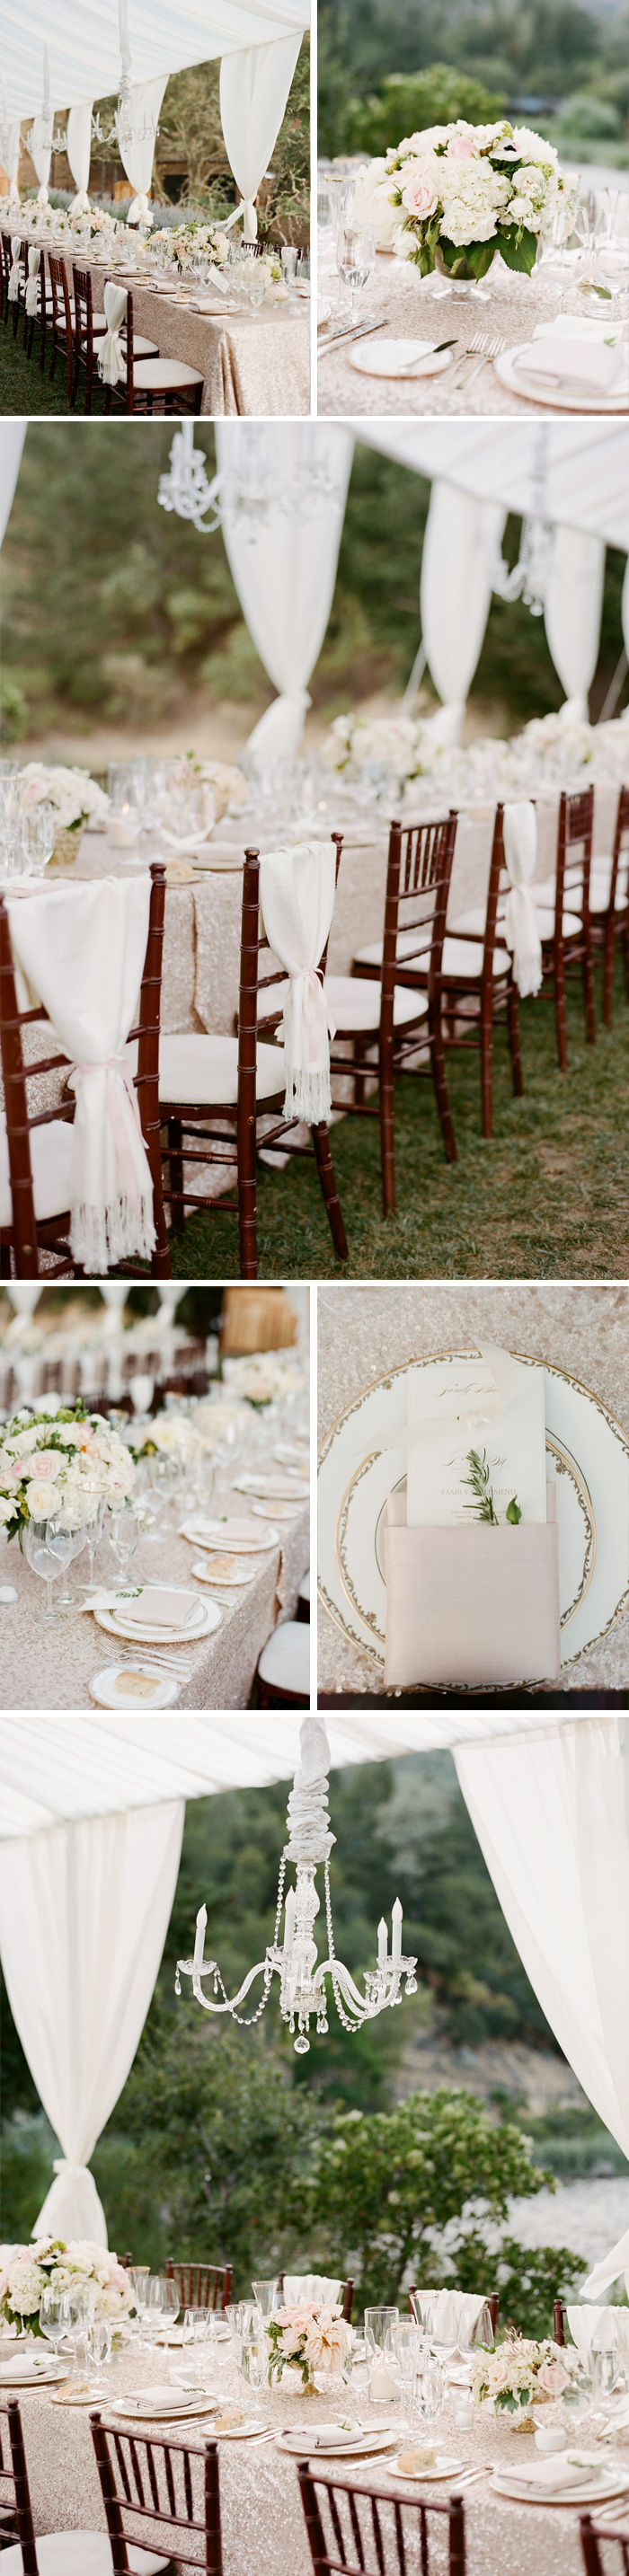 Shawls tied behind chairs, painted plates, glittering tablecloths, and gorgeous floral arrangements add to the elegance of the outdoor reception; photo by Sylvie Gil